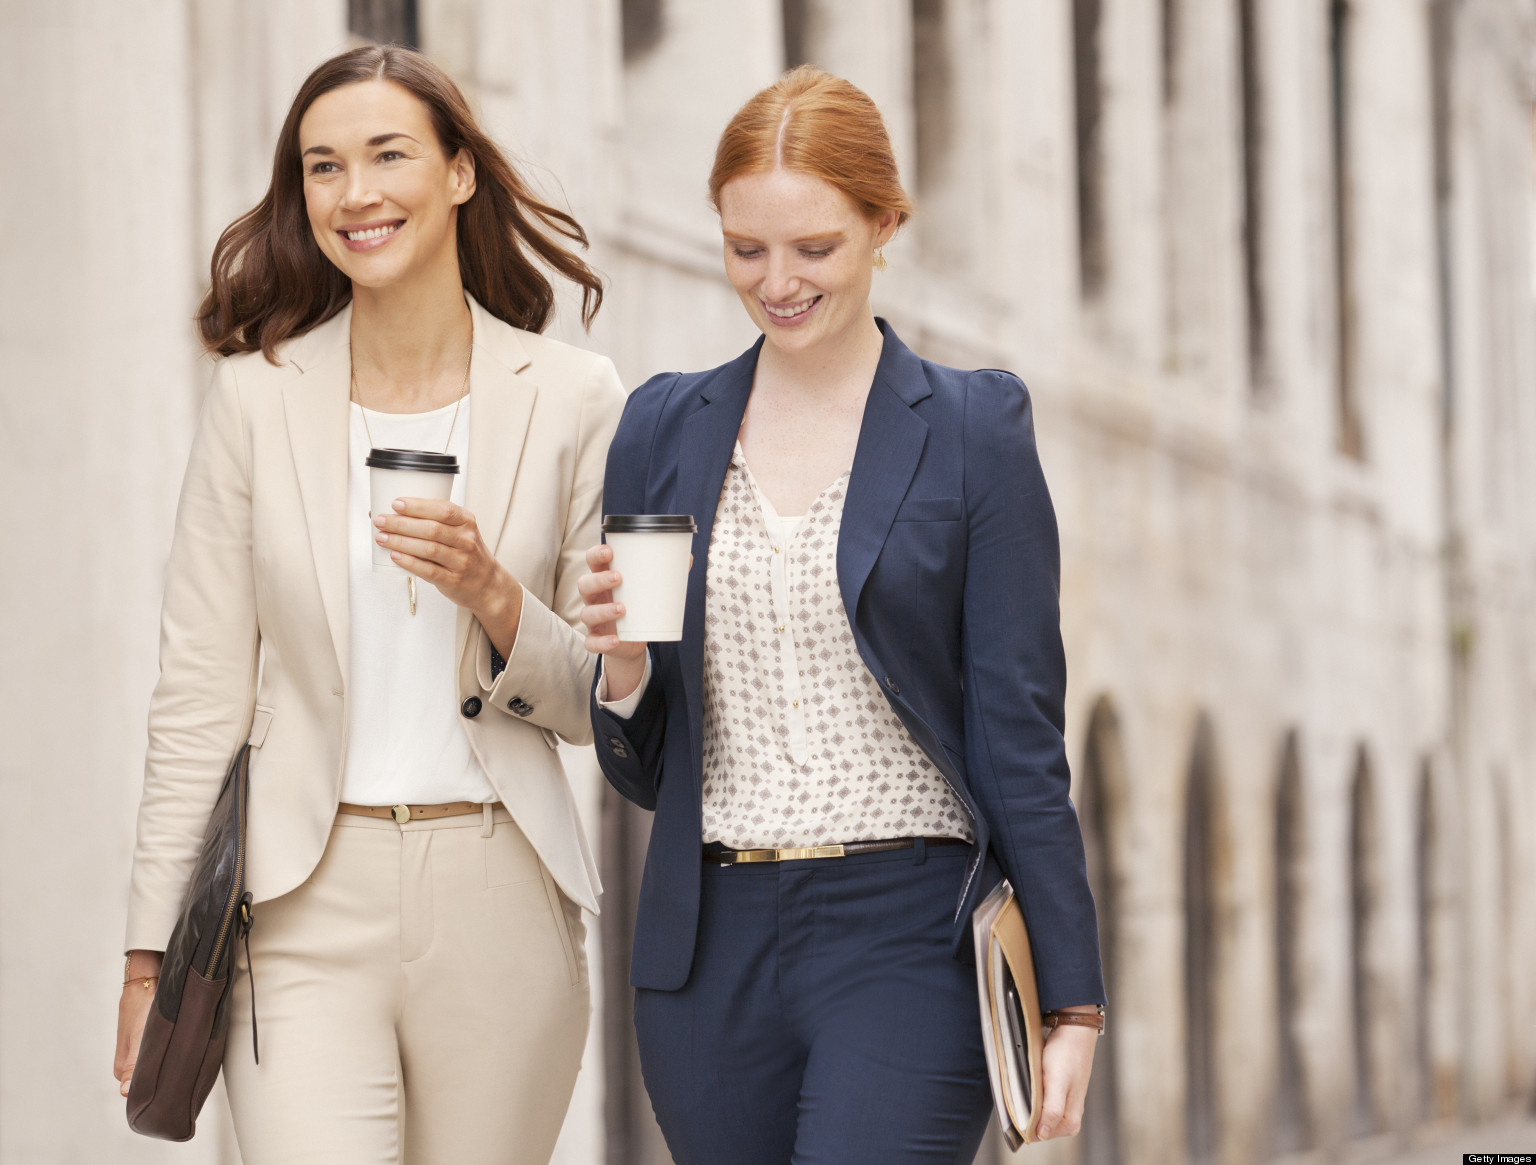 Smiling businesswomen walking with coffee